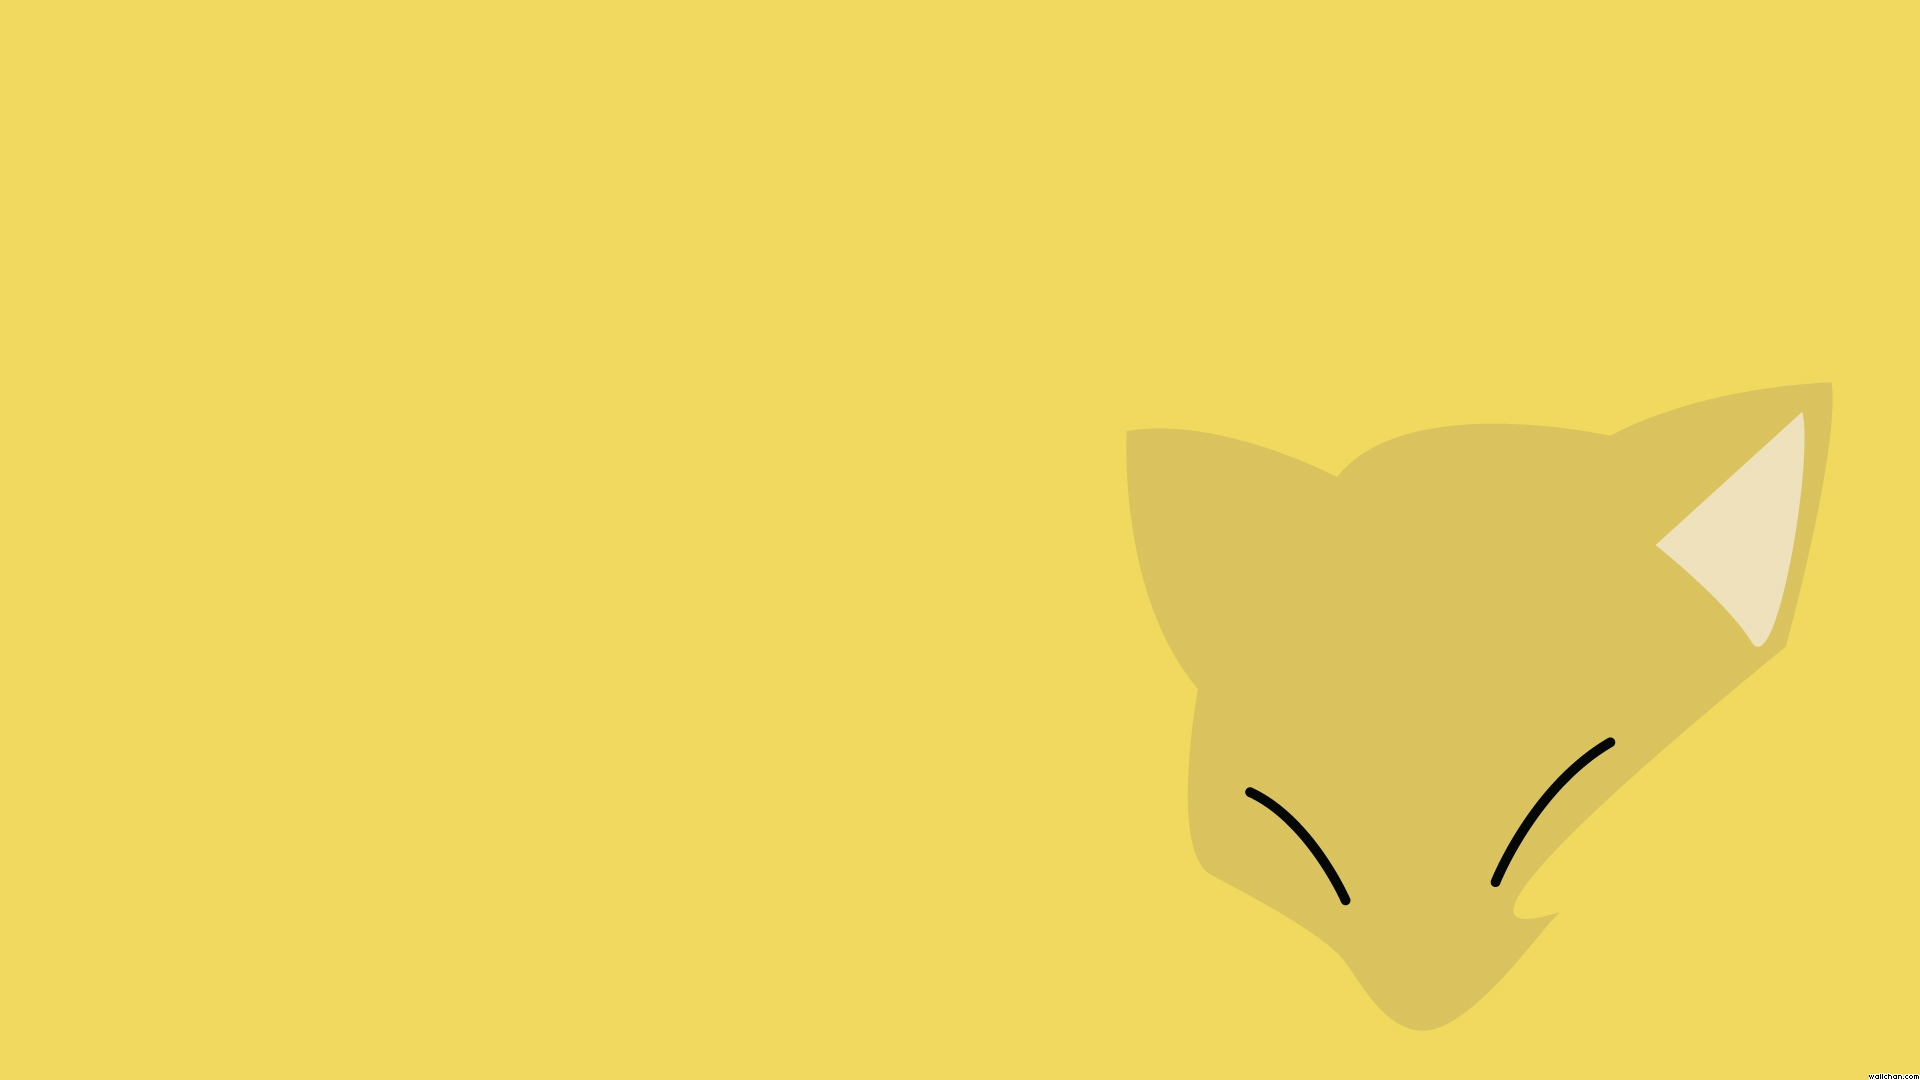 Download Pokemon Abra Wallpaper 1920x1080 Wallpoper 315096 1920x1080